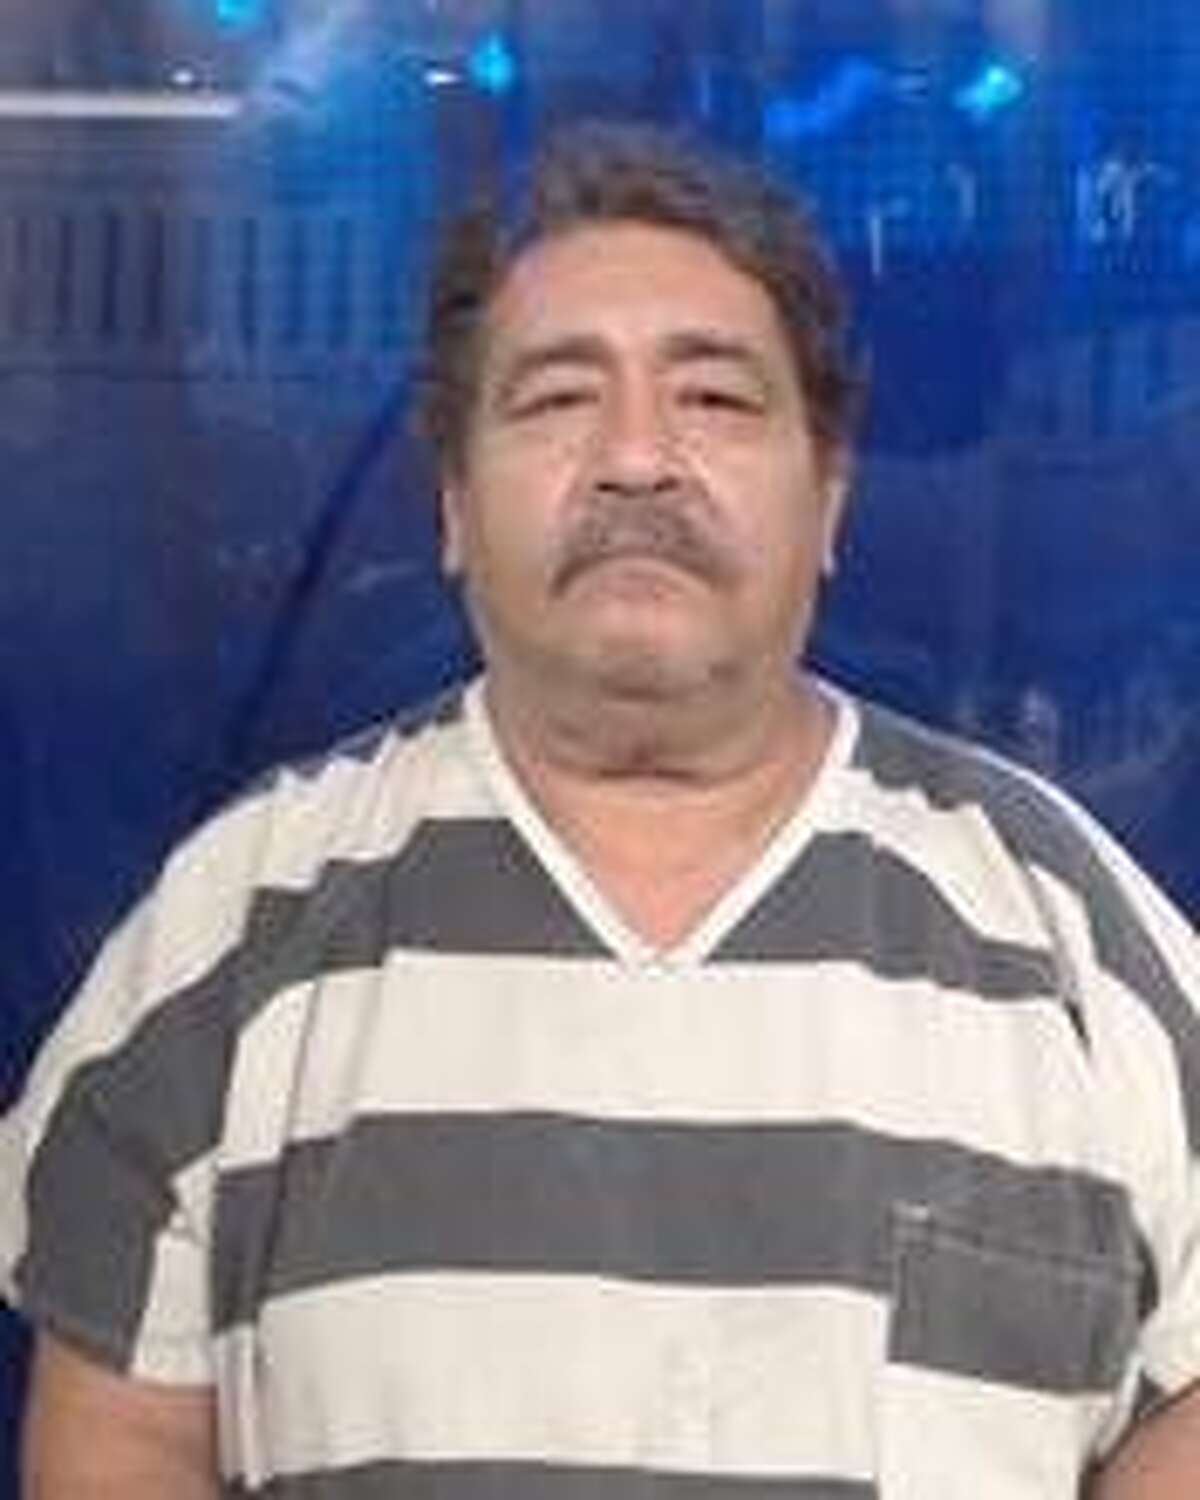 Gustavo A. Rodriguez Jr., 60, was served with warrants charging him with deadly conduct by discharging a firearm and criminal mischief.